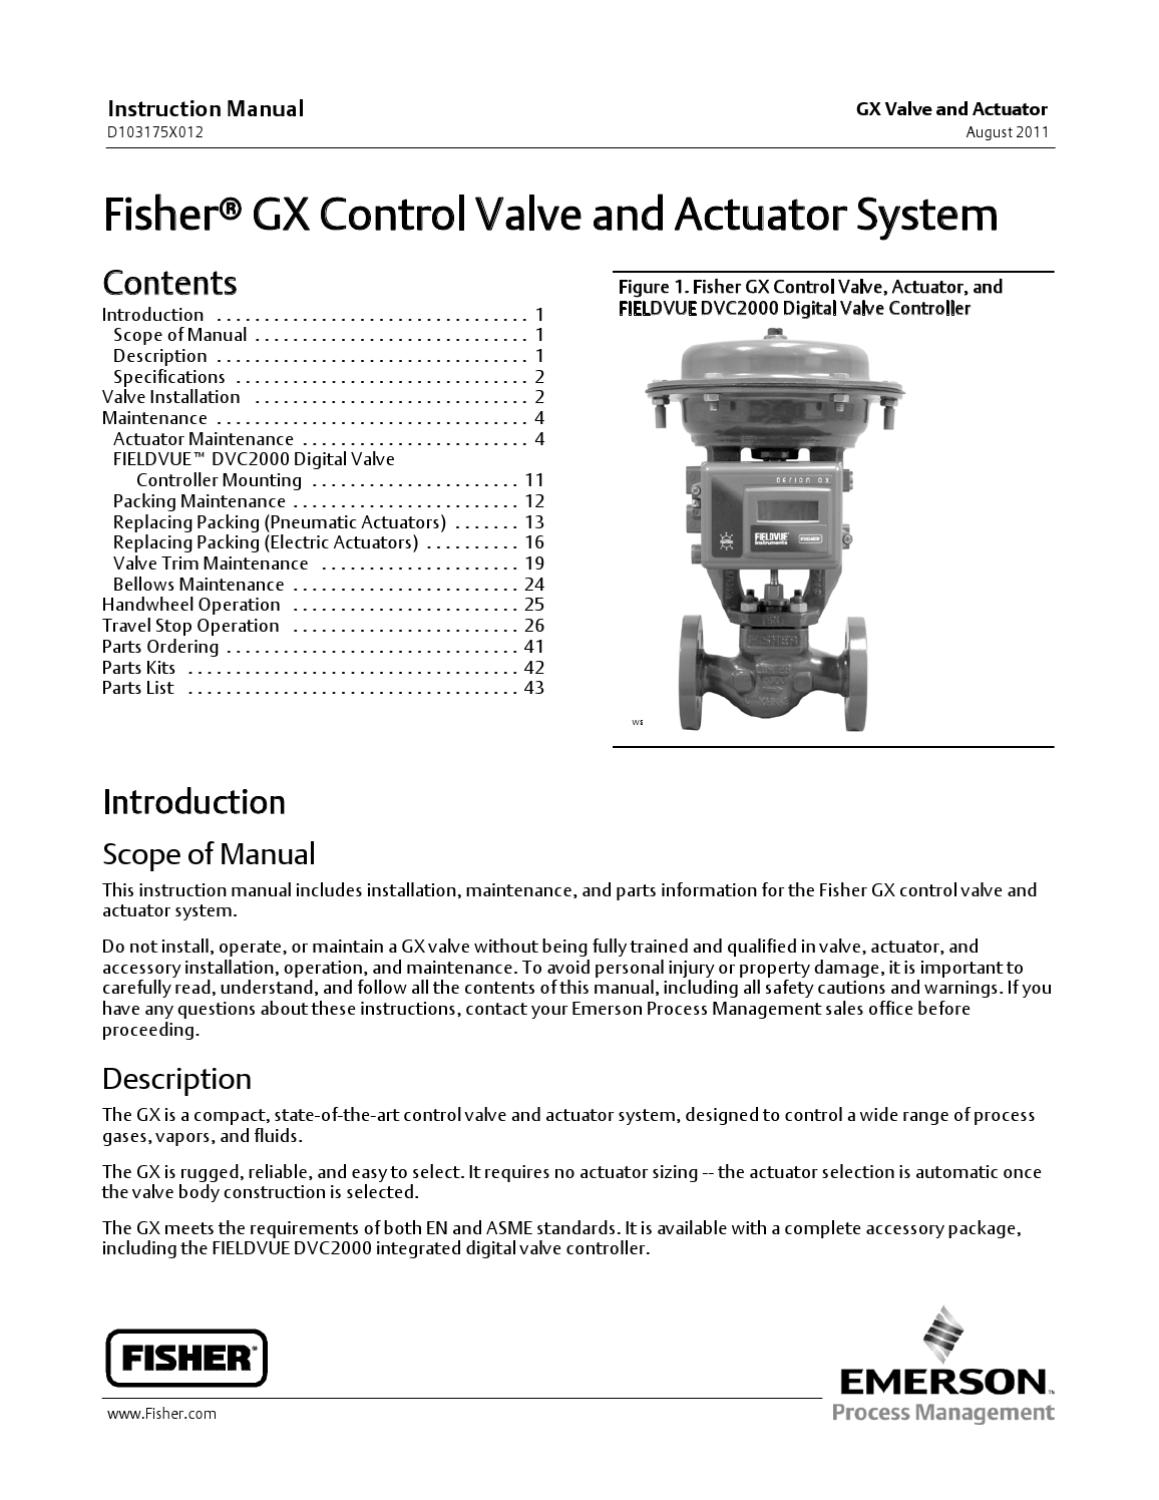 GX Valve Instruction Manual Aug 2011 by RMC Process Controls